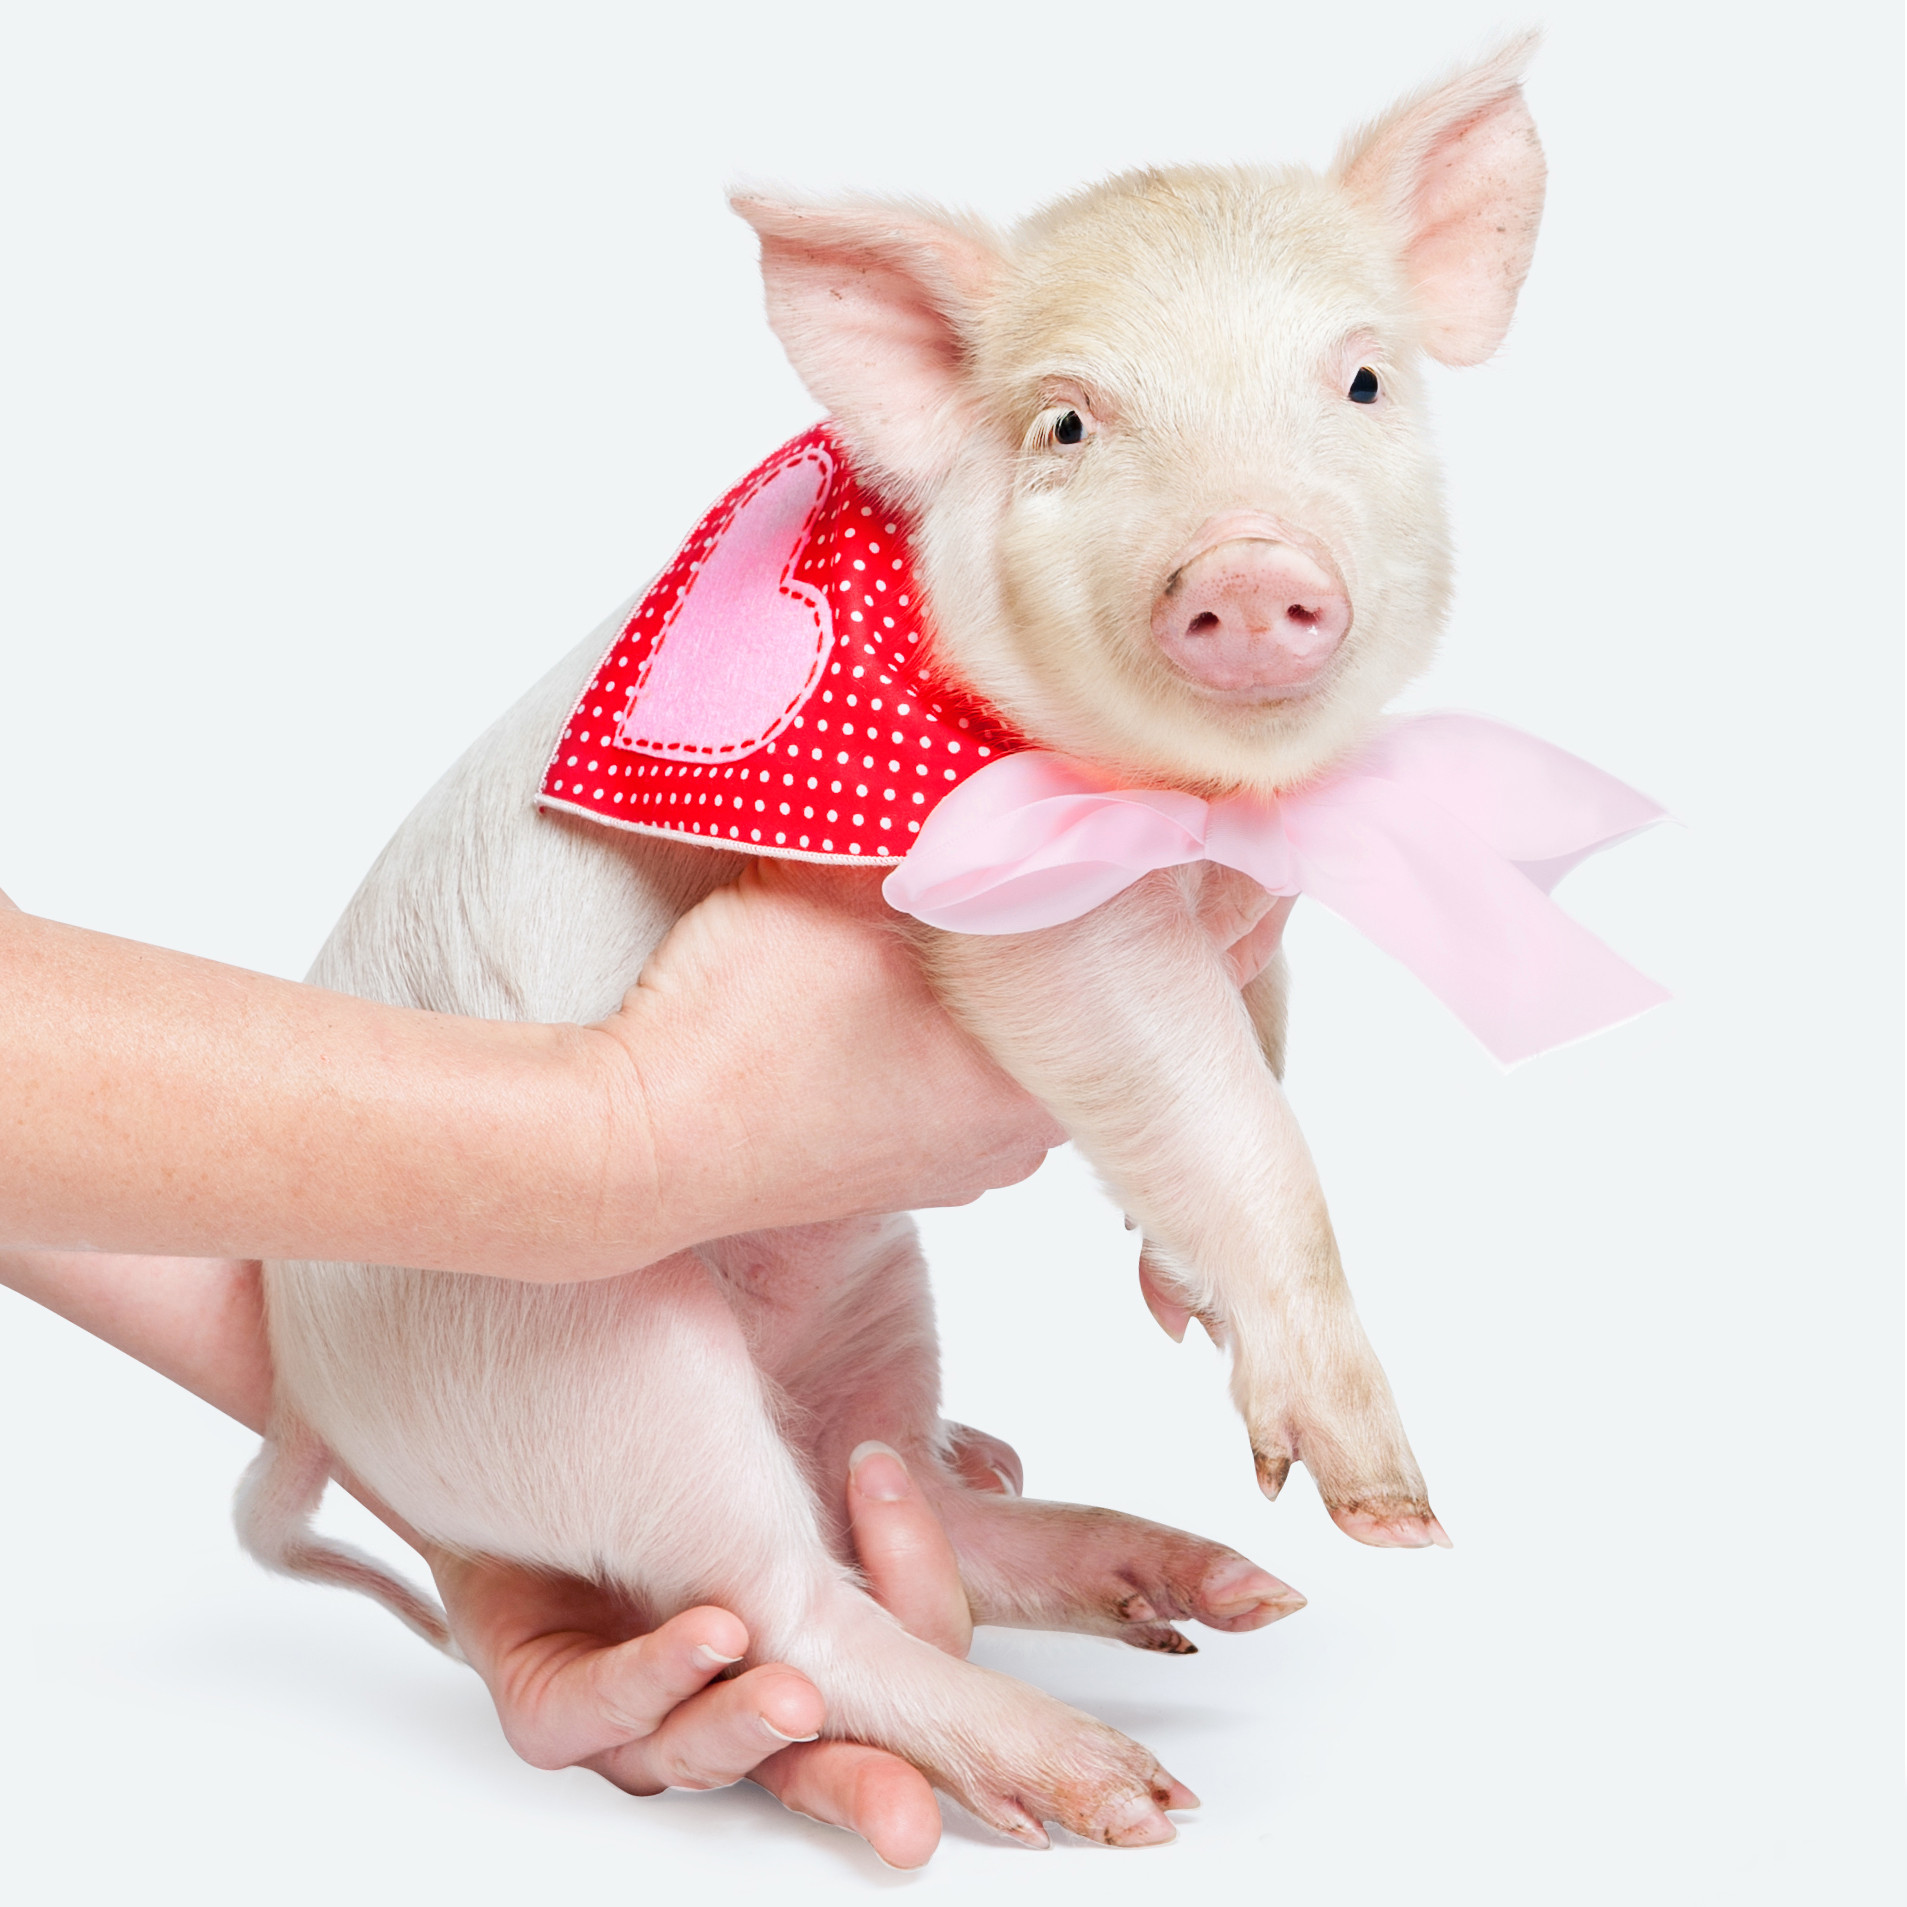 Paola-Paladini-Studio-pigglet-with-bow